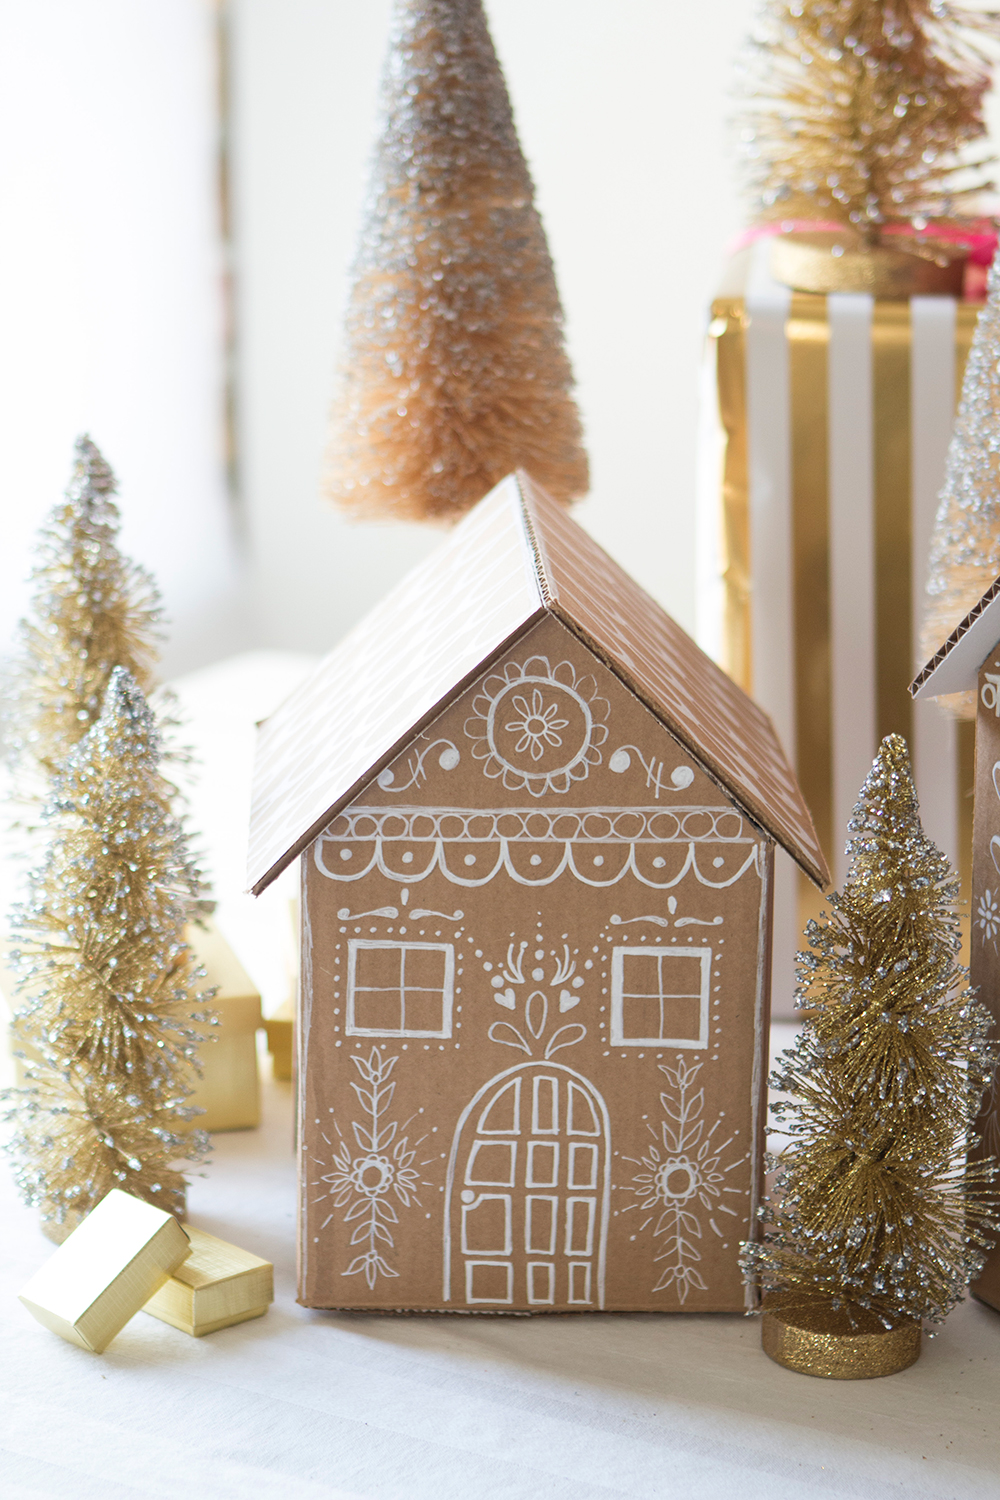 Gingerbread house gift box tutorial